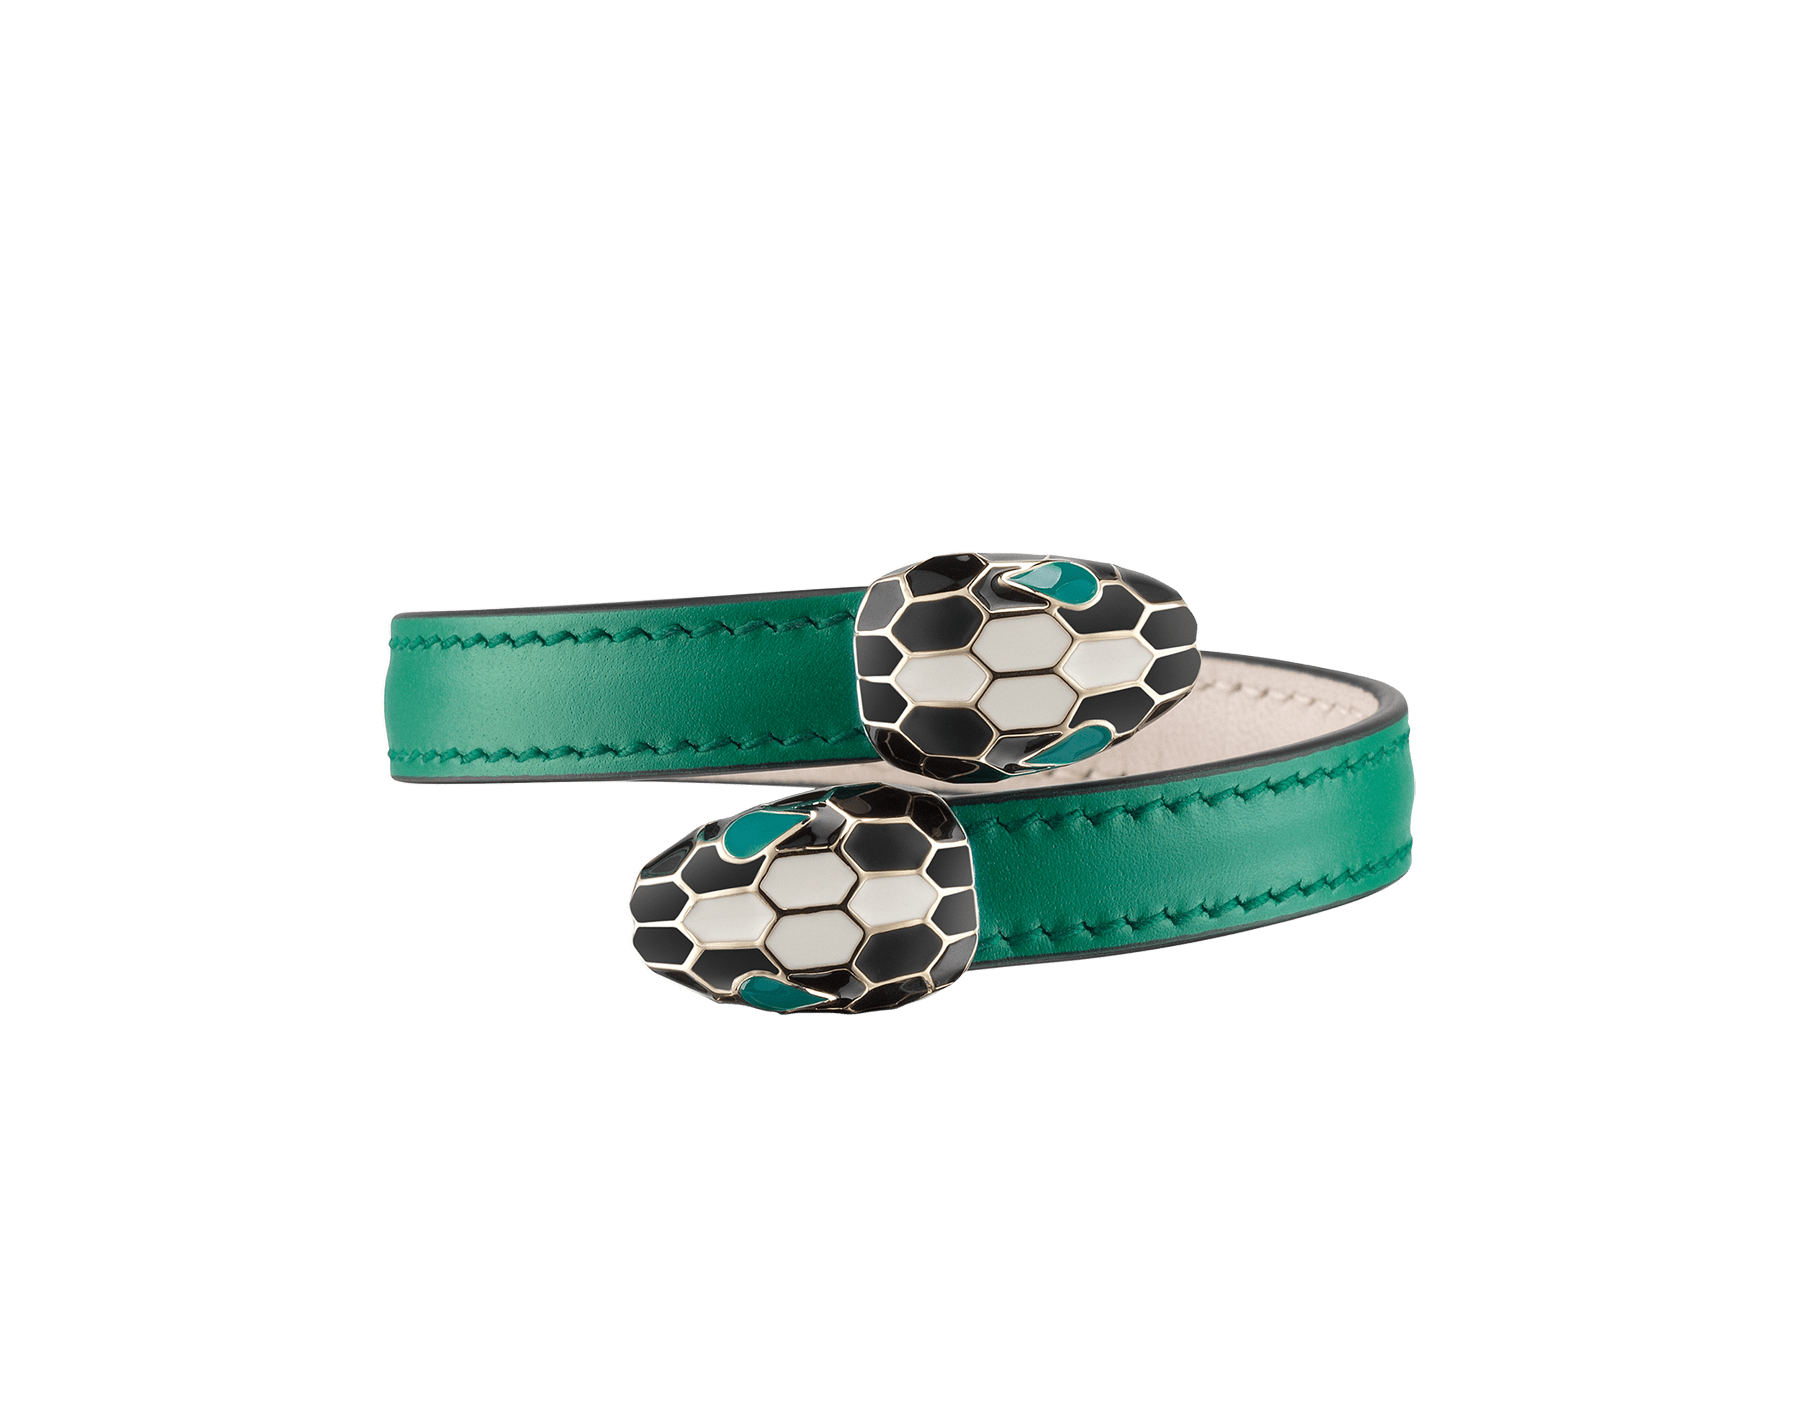 Serpenti Forever soft bangle bracelet in emerald green calf leather, with brass light gold plated hardware. Iconic contraire snakehead décor in black and white enamel, with green enamel eyes. SerpSoftContr-CL-EG image 1